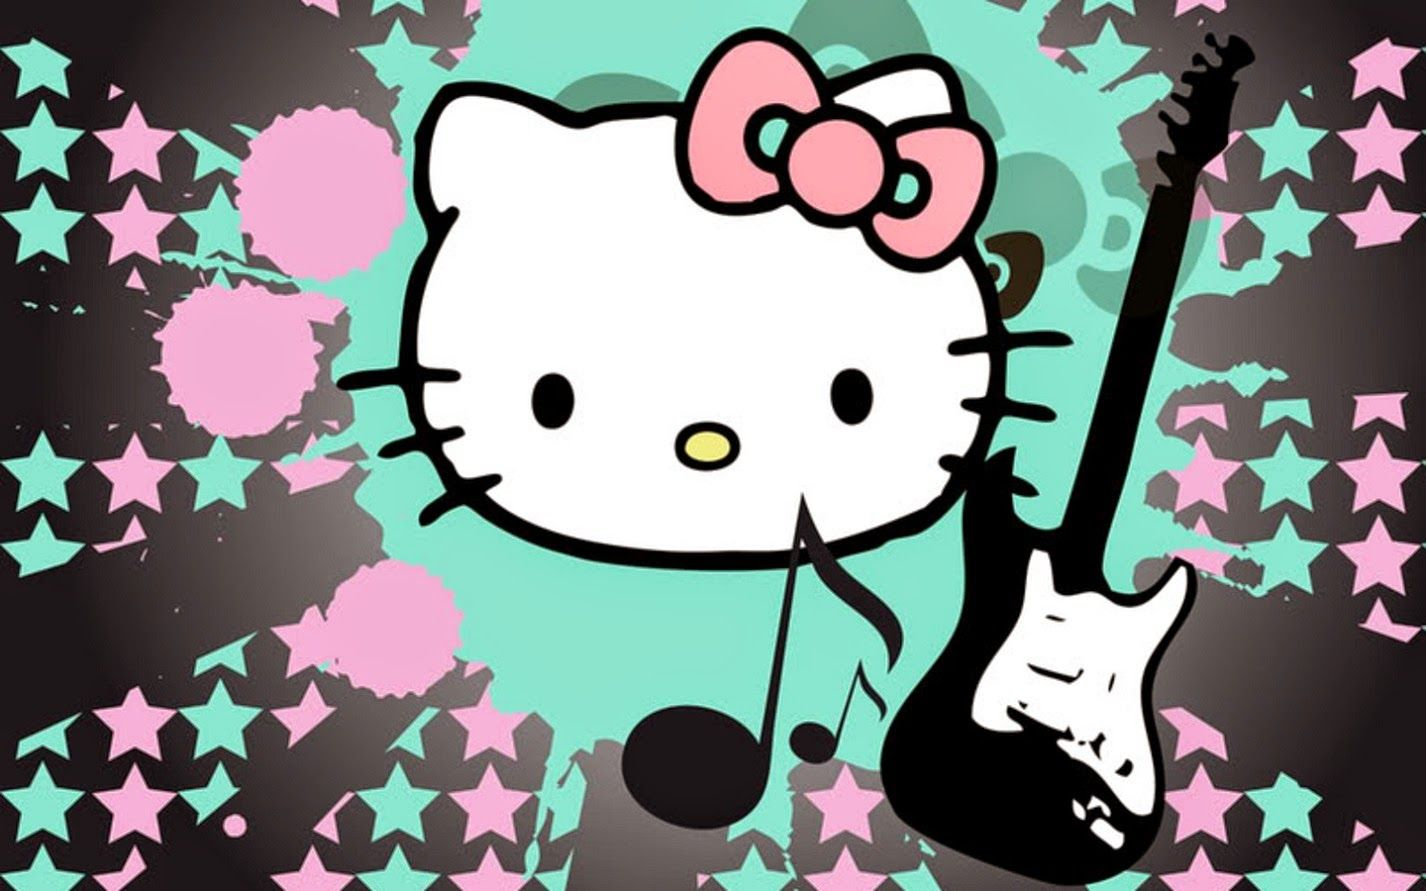 Who android wallpaper pictures of snow free hello kitty wallpaper - Wallpaper Love Pink Pink Black Wallpaperfreebie Even My Phone Wants To Hello Kitty